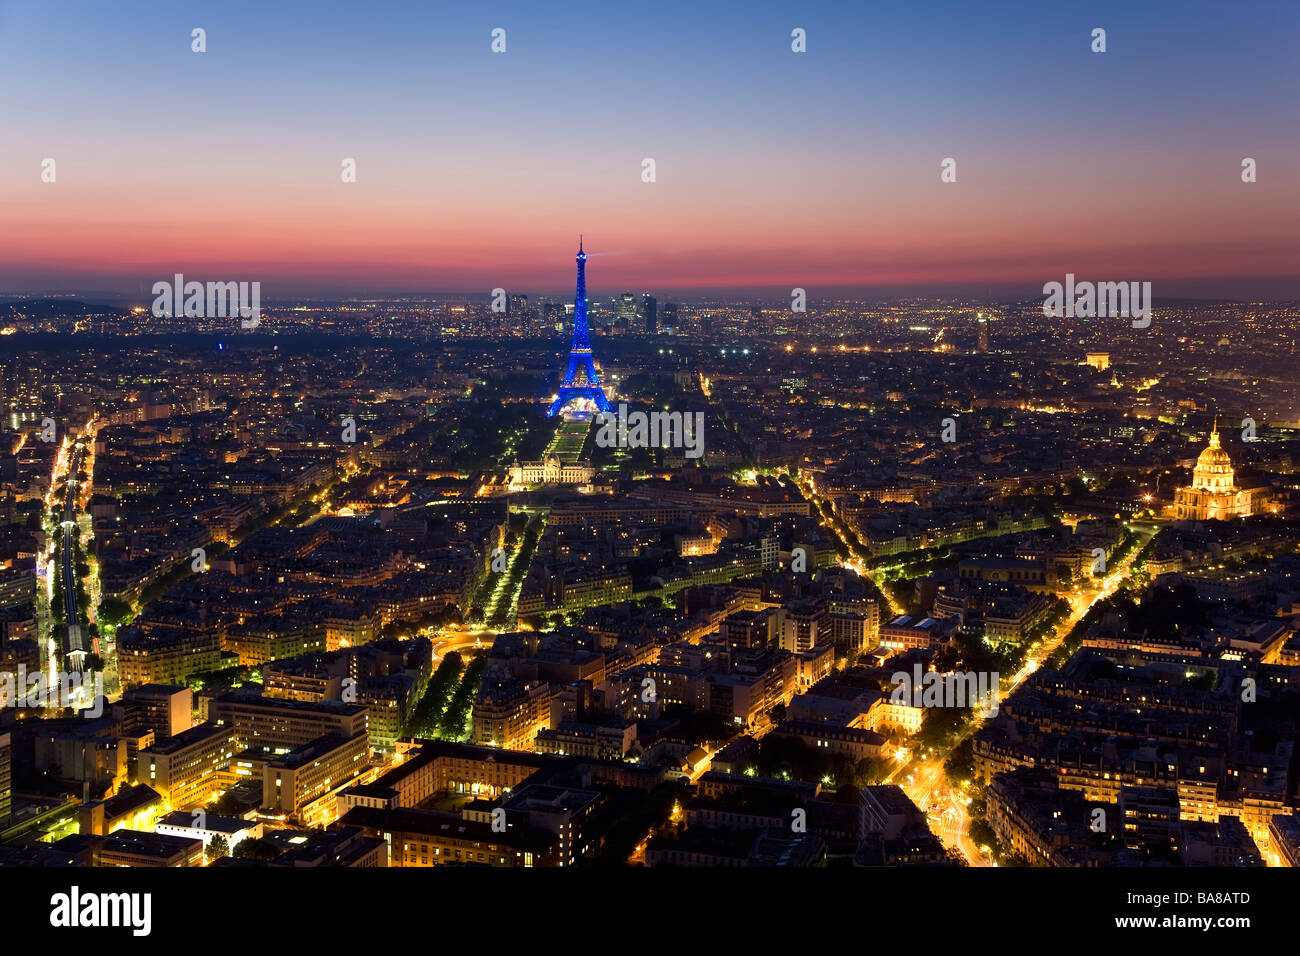 View over Eiffel Tower Paris France - Stock Image